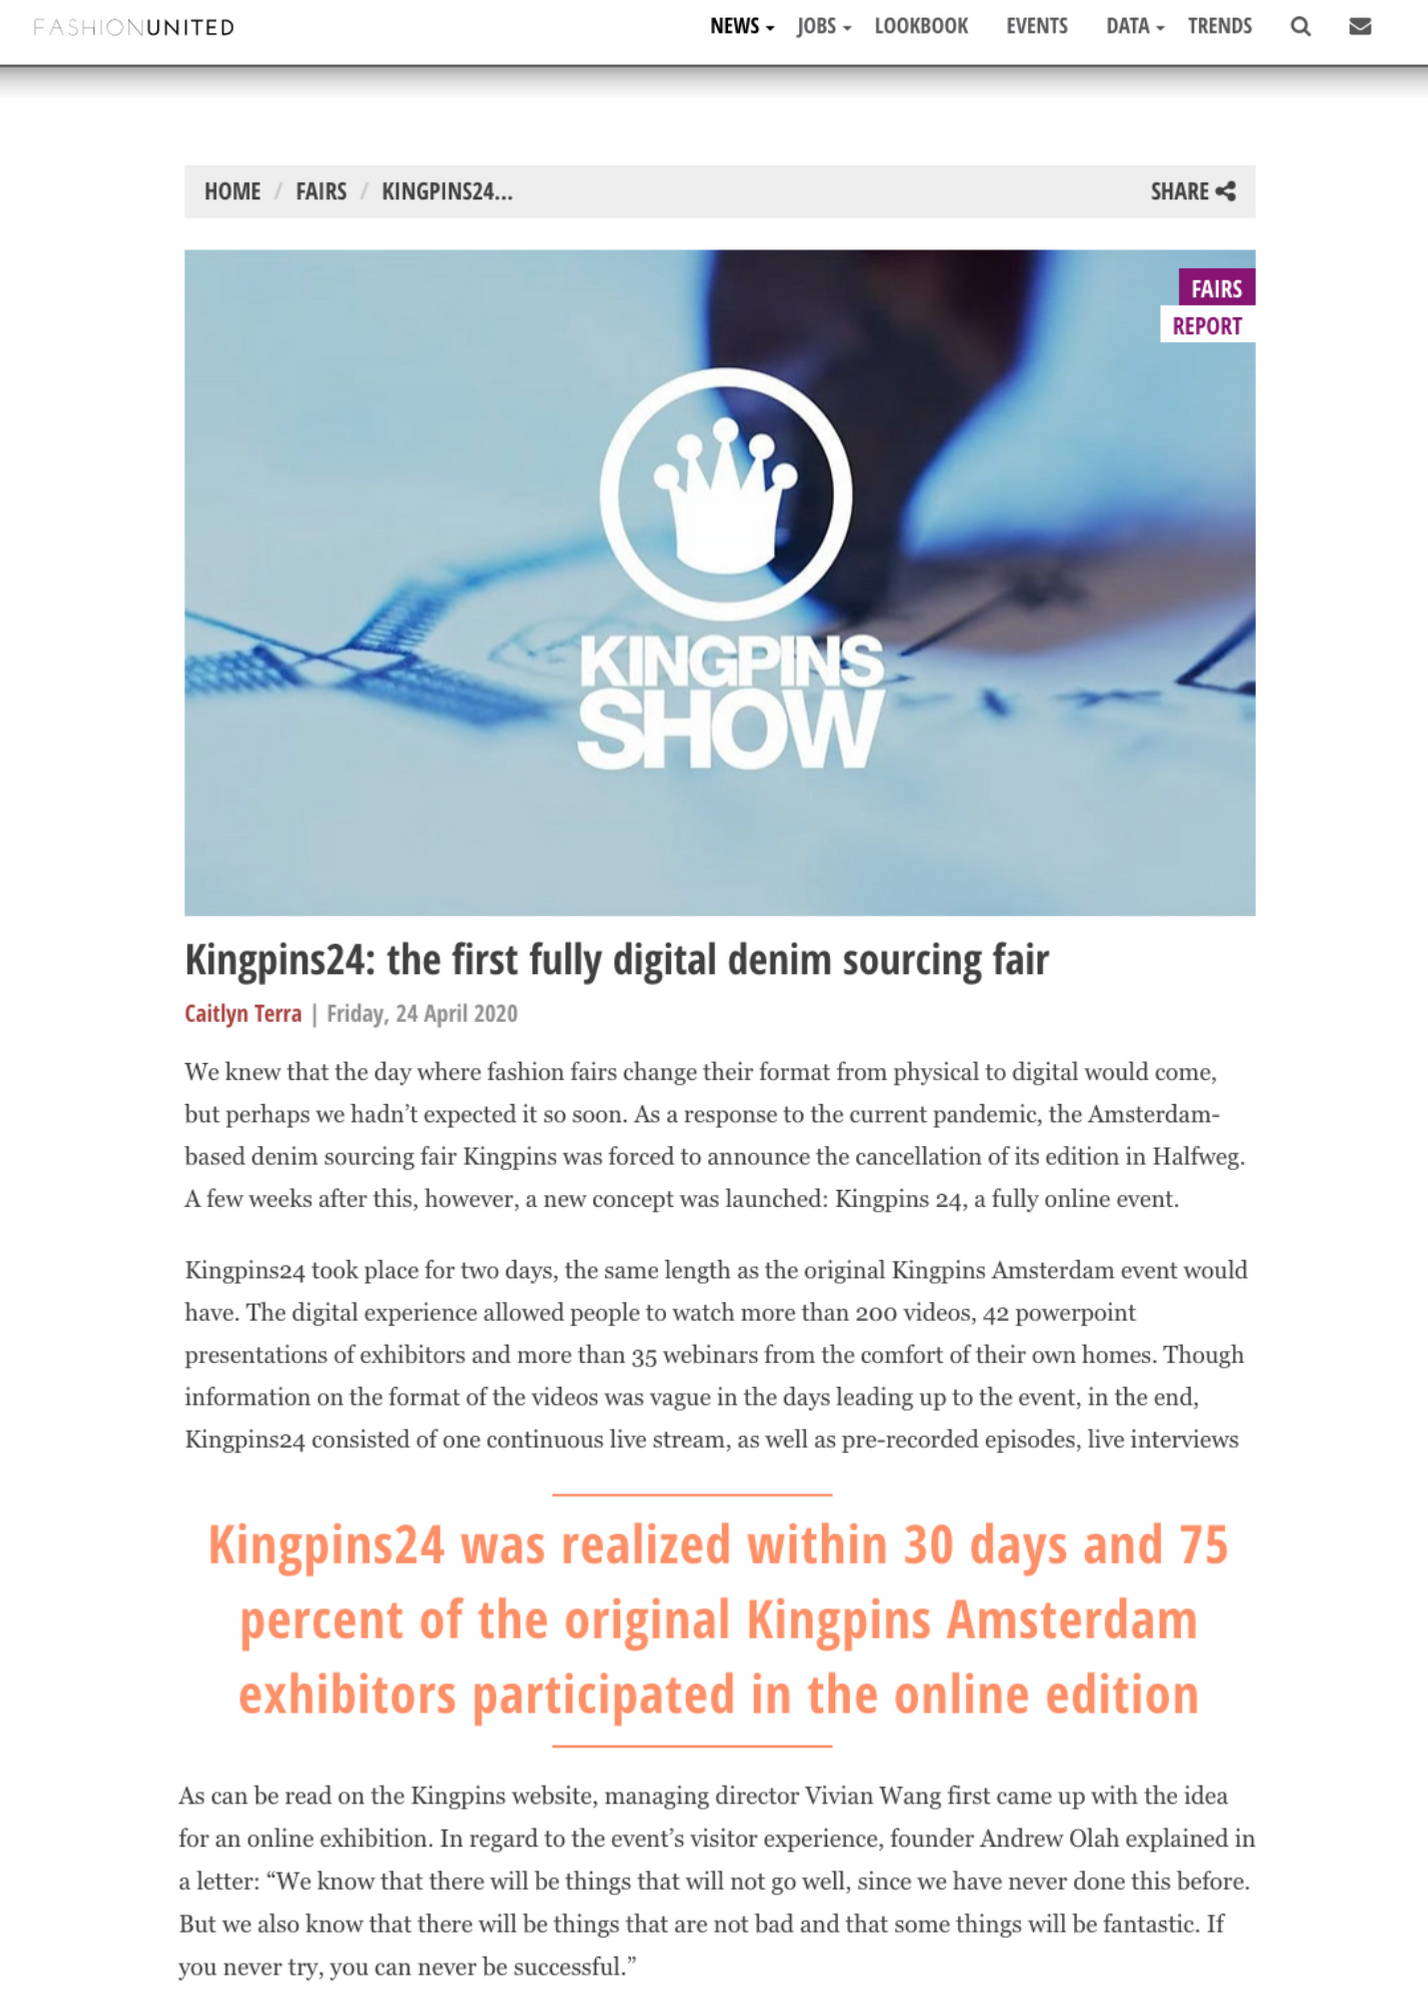 Kingpins24: the first fully digital denim sourcing fair article